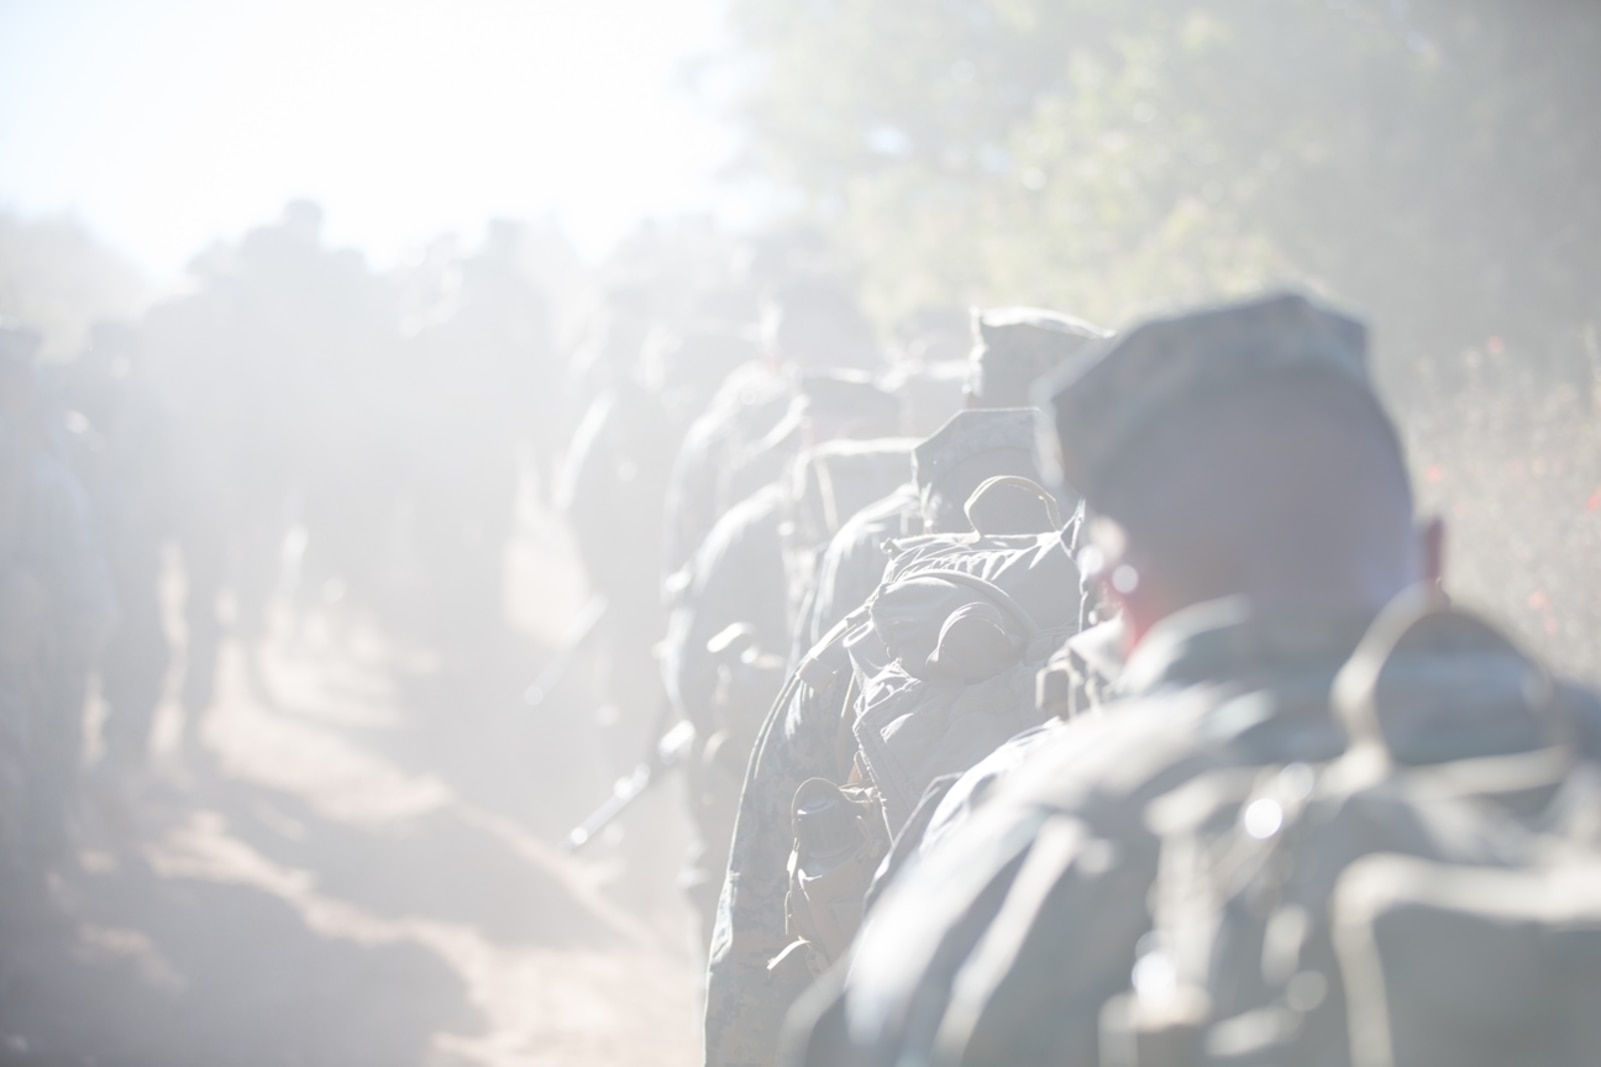 U.S. Marines and Sailors with Combat Logistics Battalion 5, Combat Logistics Regiment 1, 1st Marine Logistics Group participate in a seven mile conditioning hike on Camp Pendleton, Calif., June 27, 2017. The Marines have multiple conditioning hikes to prepare for Mountain Exercise 4-17 which will be conducted at the Marine Corps Mountain Warfare Training Center in Bridgeport, Calif. (U.S. Marine Corps photo by Lance Cpl. Timothy Shoemaker)